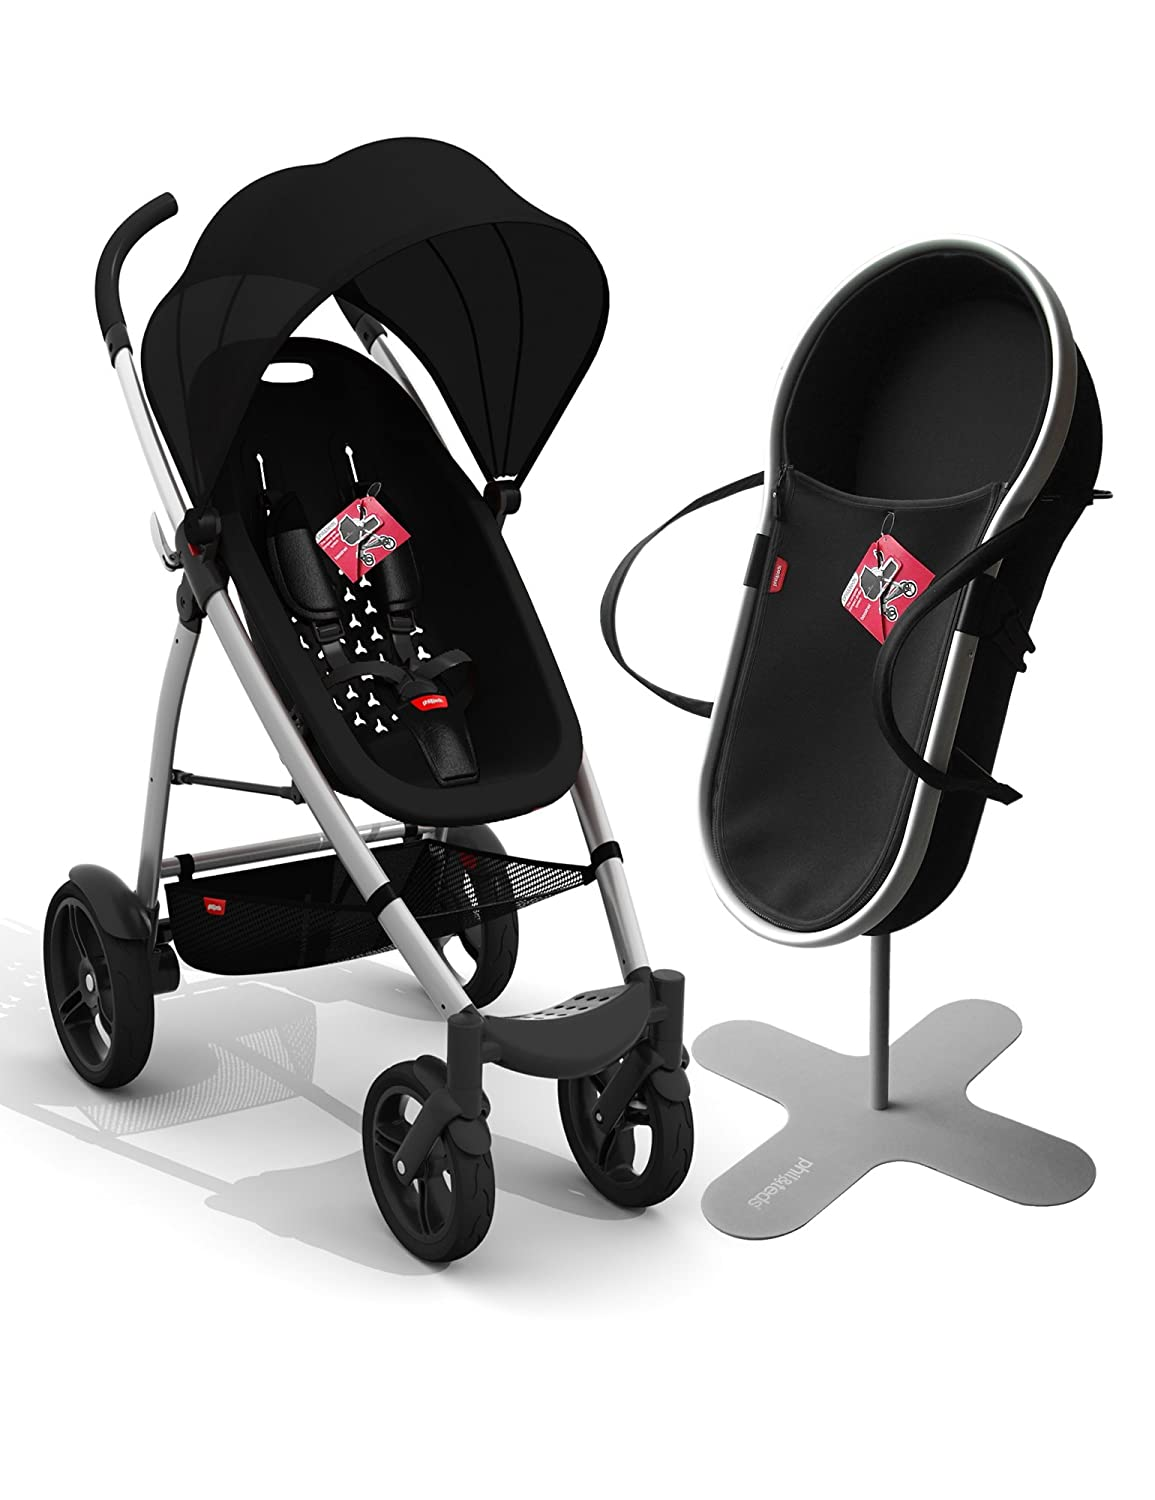 phil&teds; Smart Buggy Bassinet and Stroller Bundle, Black